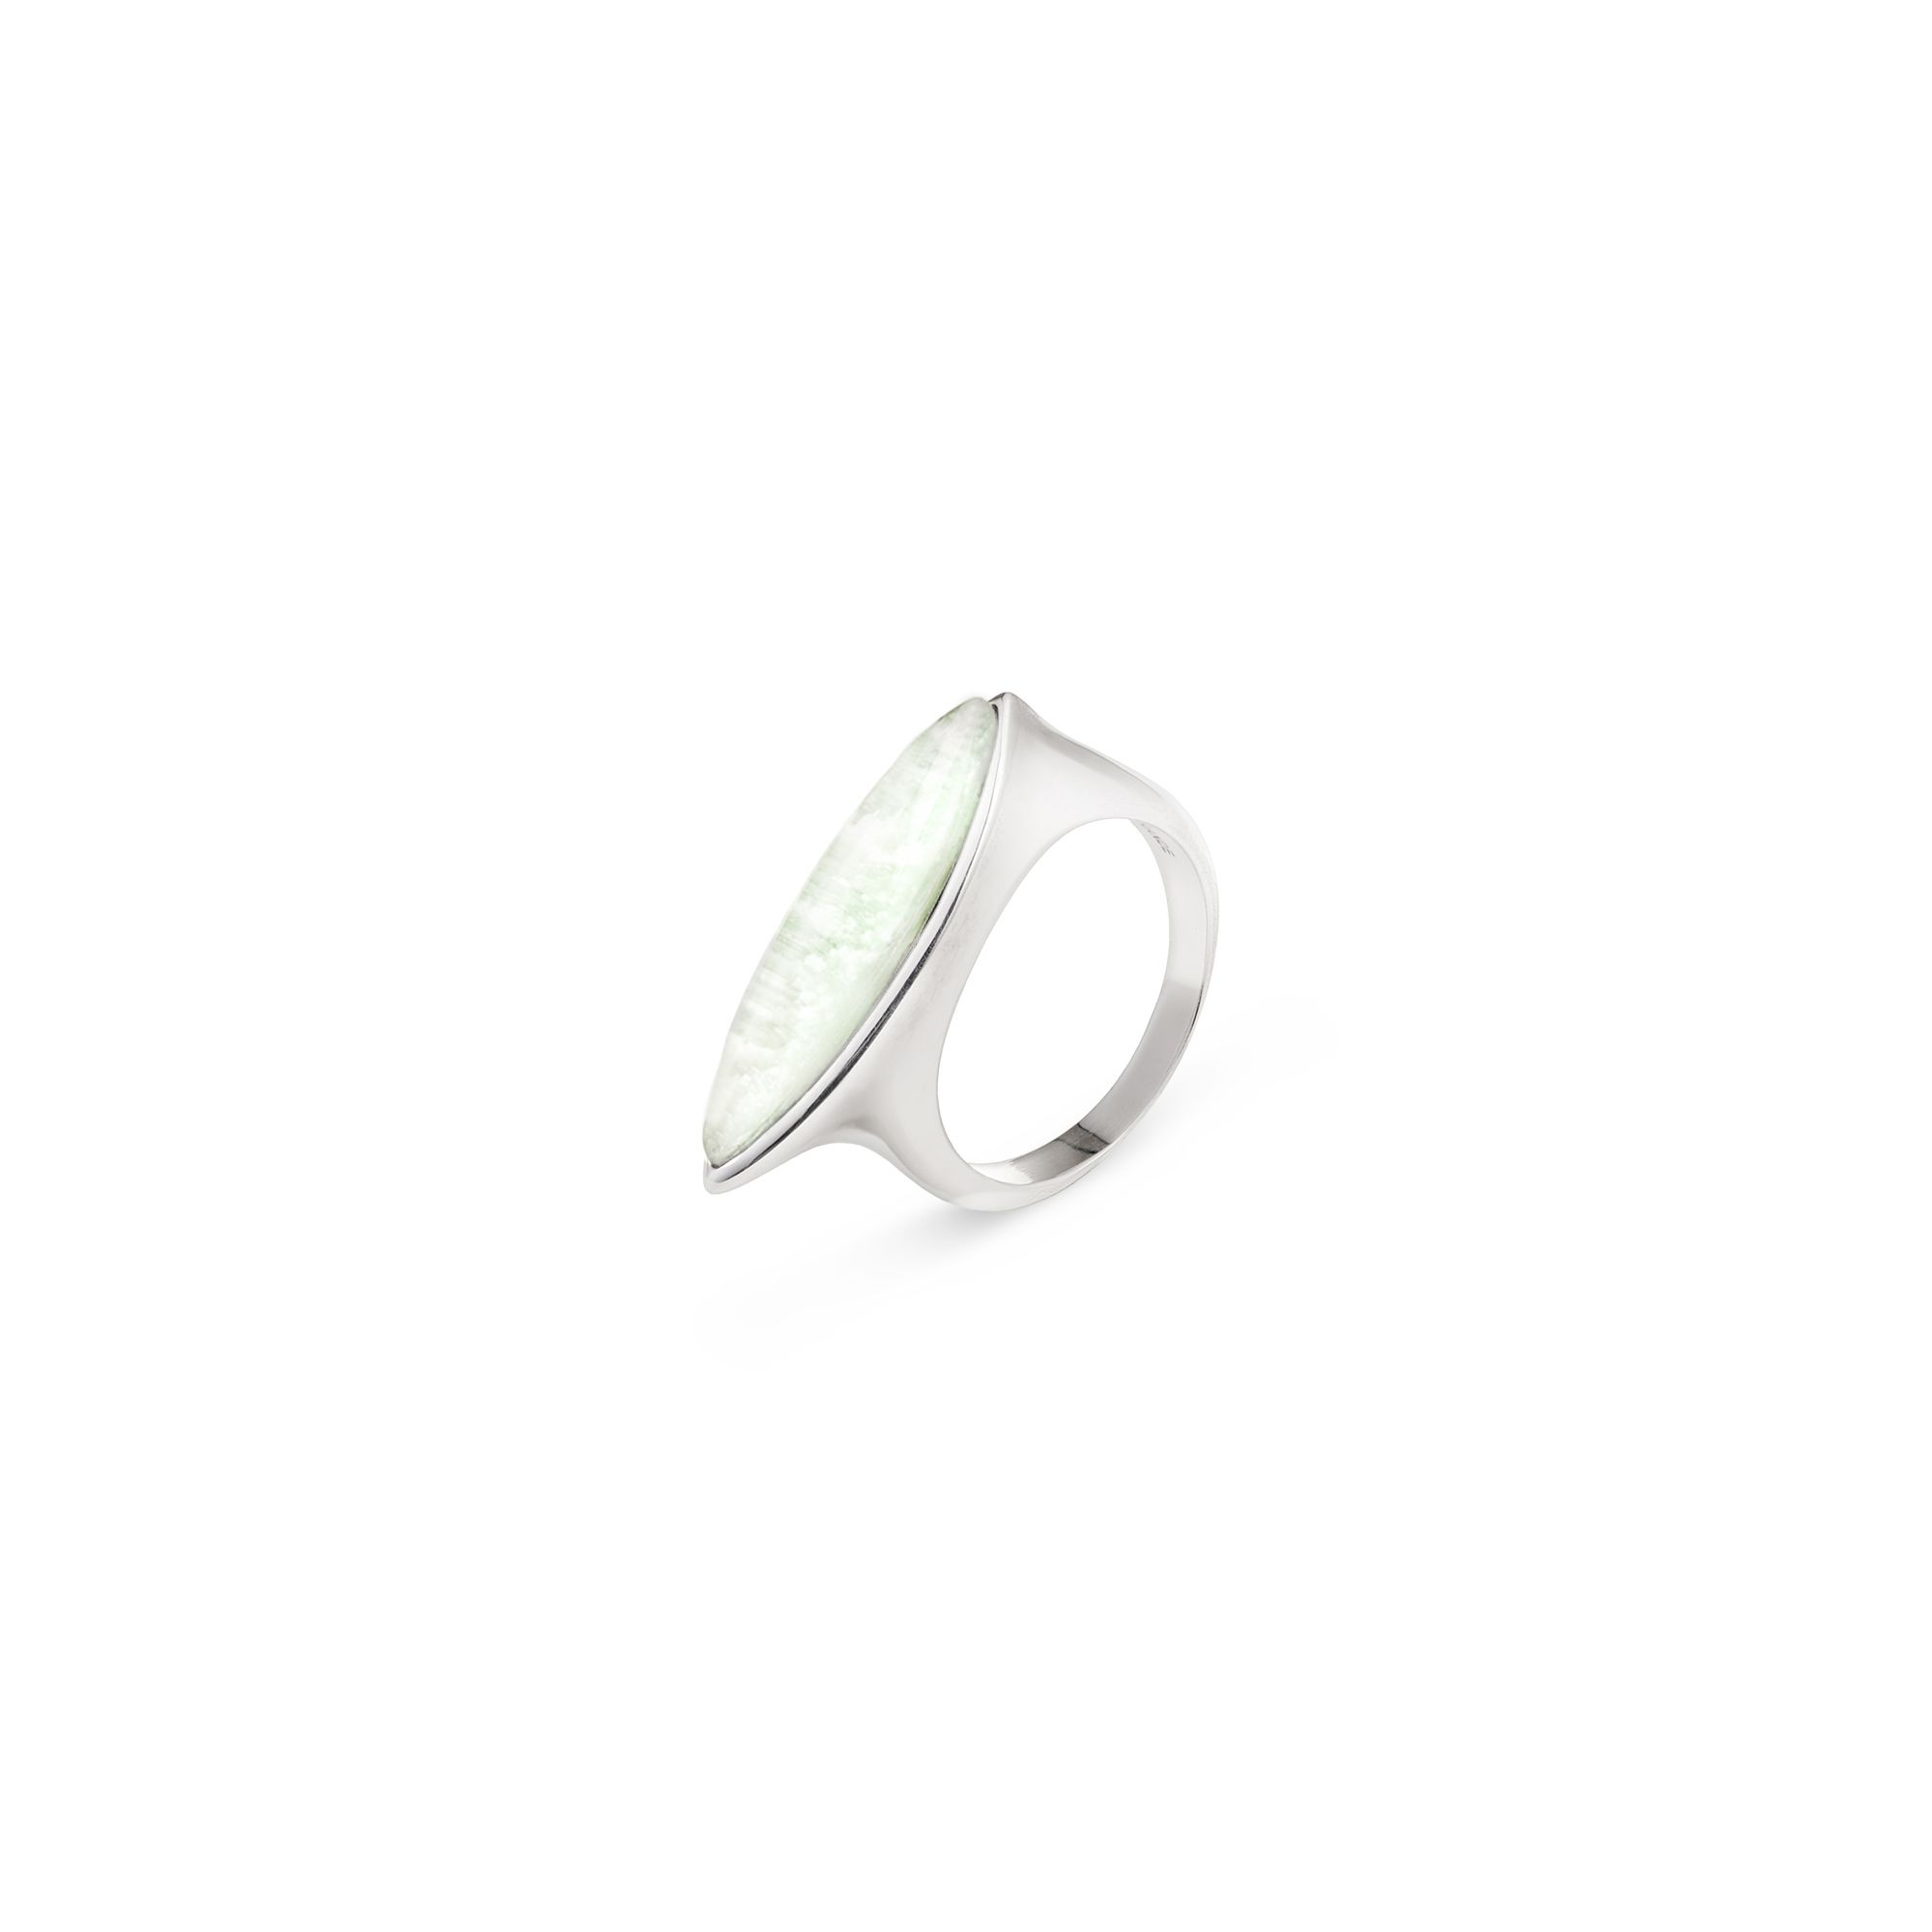 Navetta ring with agate Silver ring with light green agate